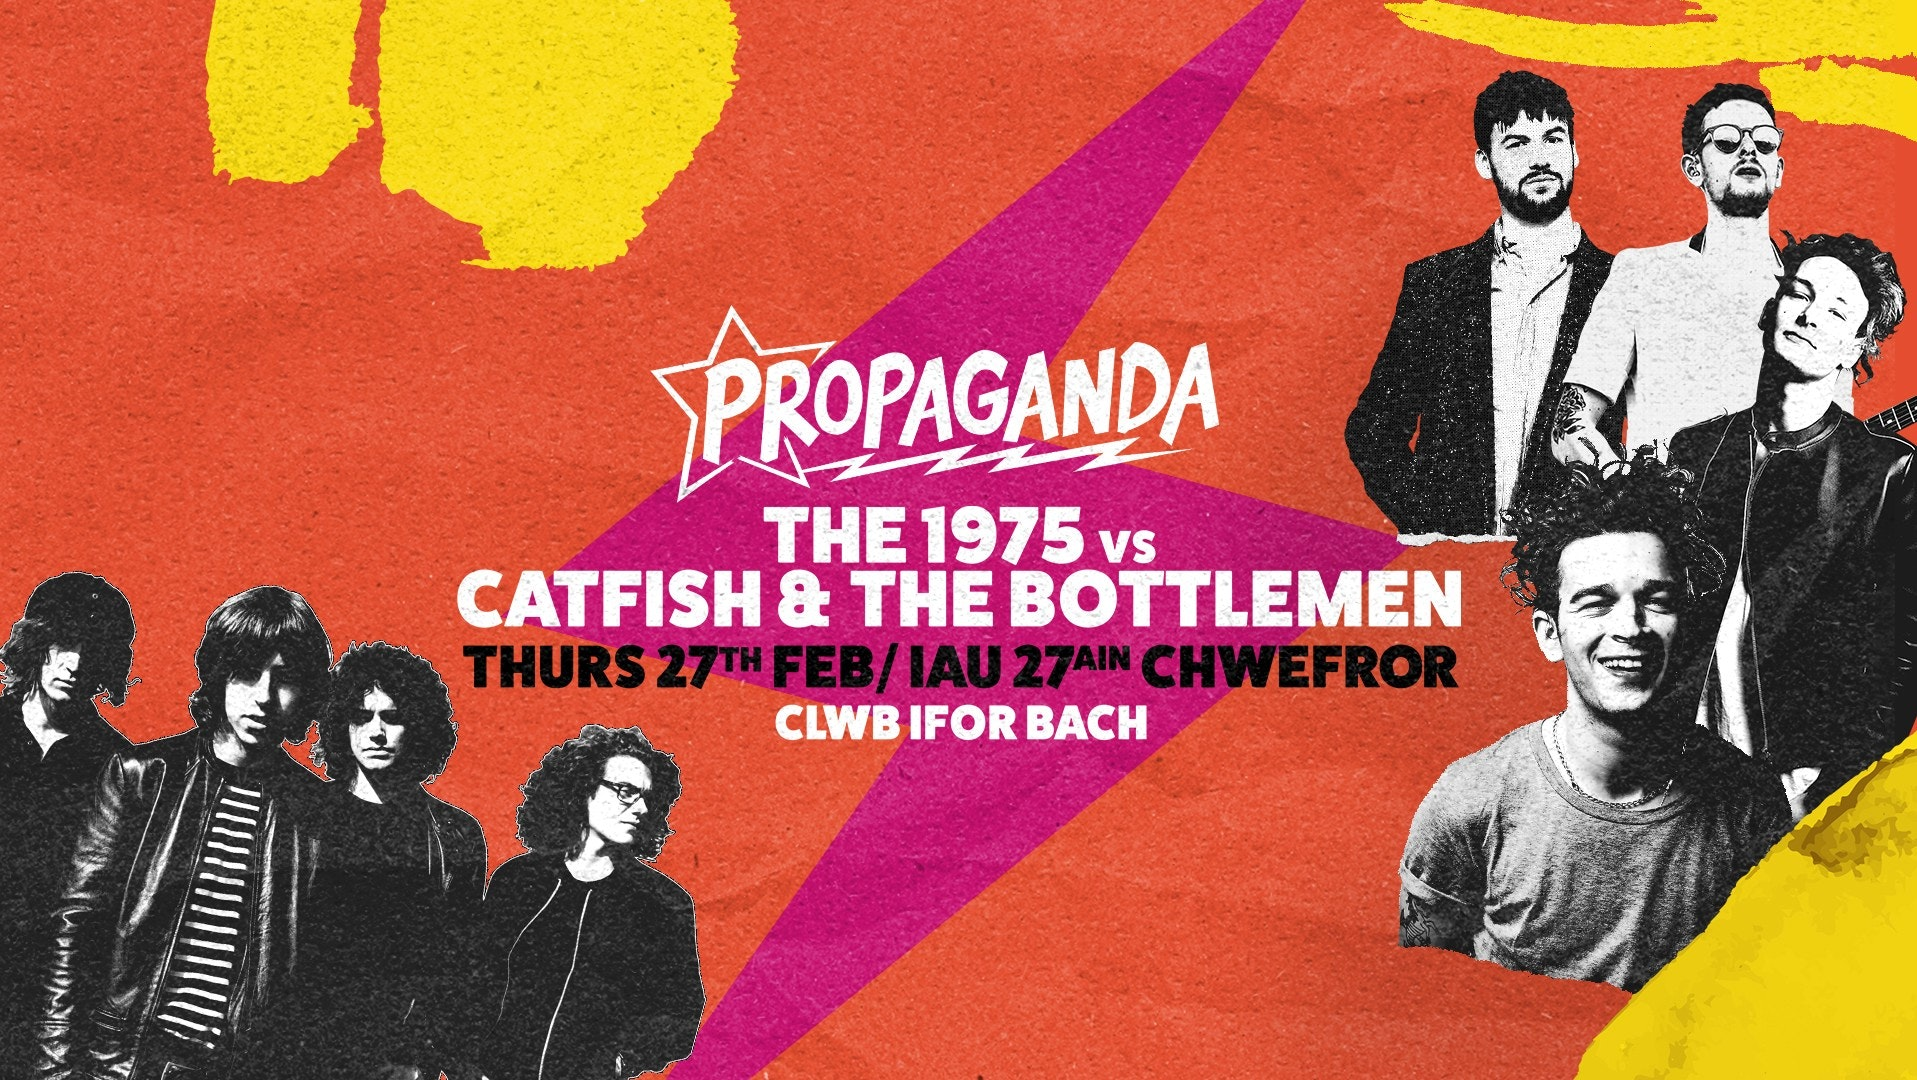 Propaganda Cardiff: The 1975 vs Catfish & The Bottlemen Special!